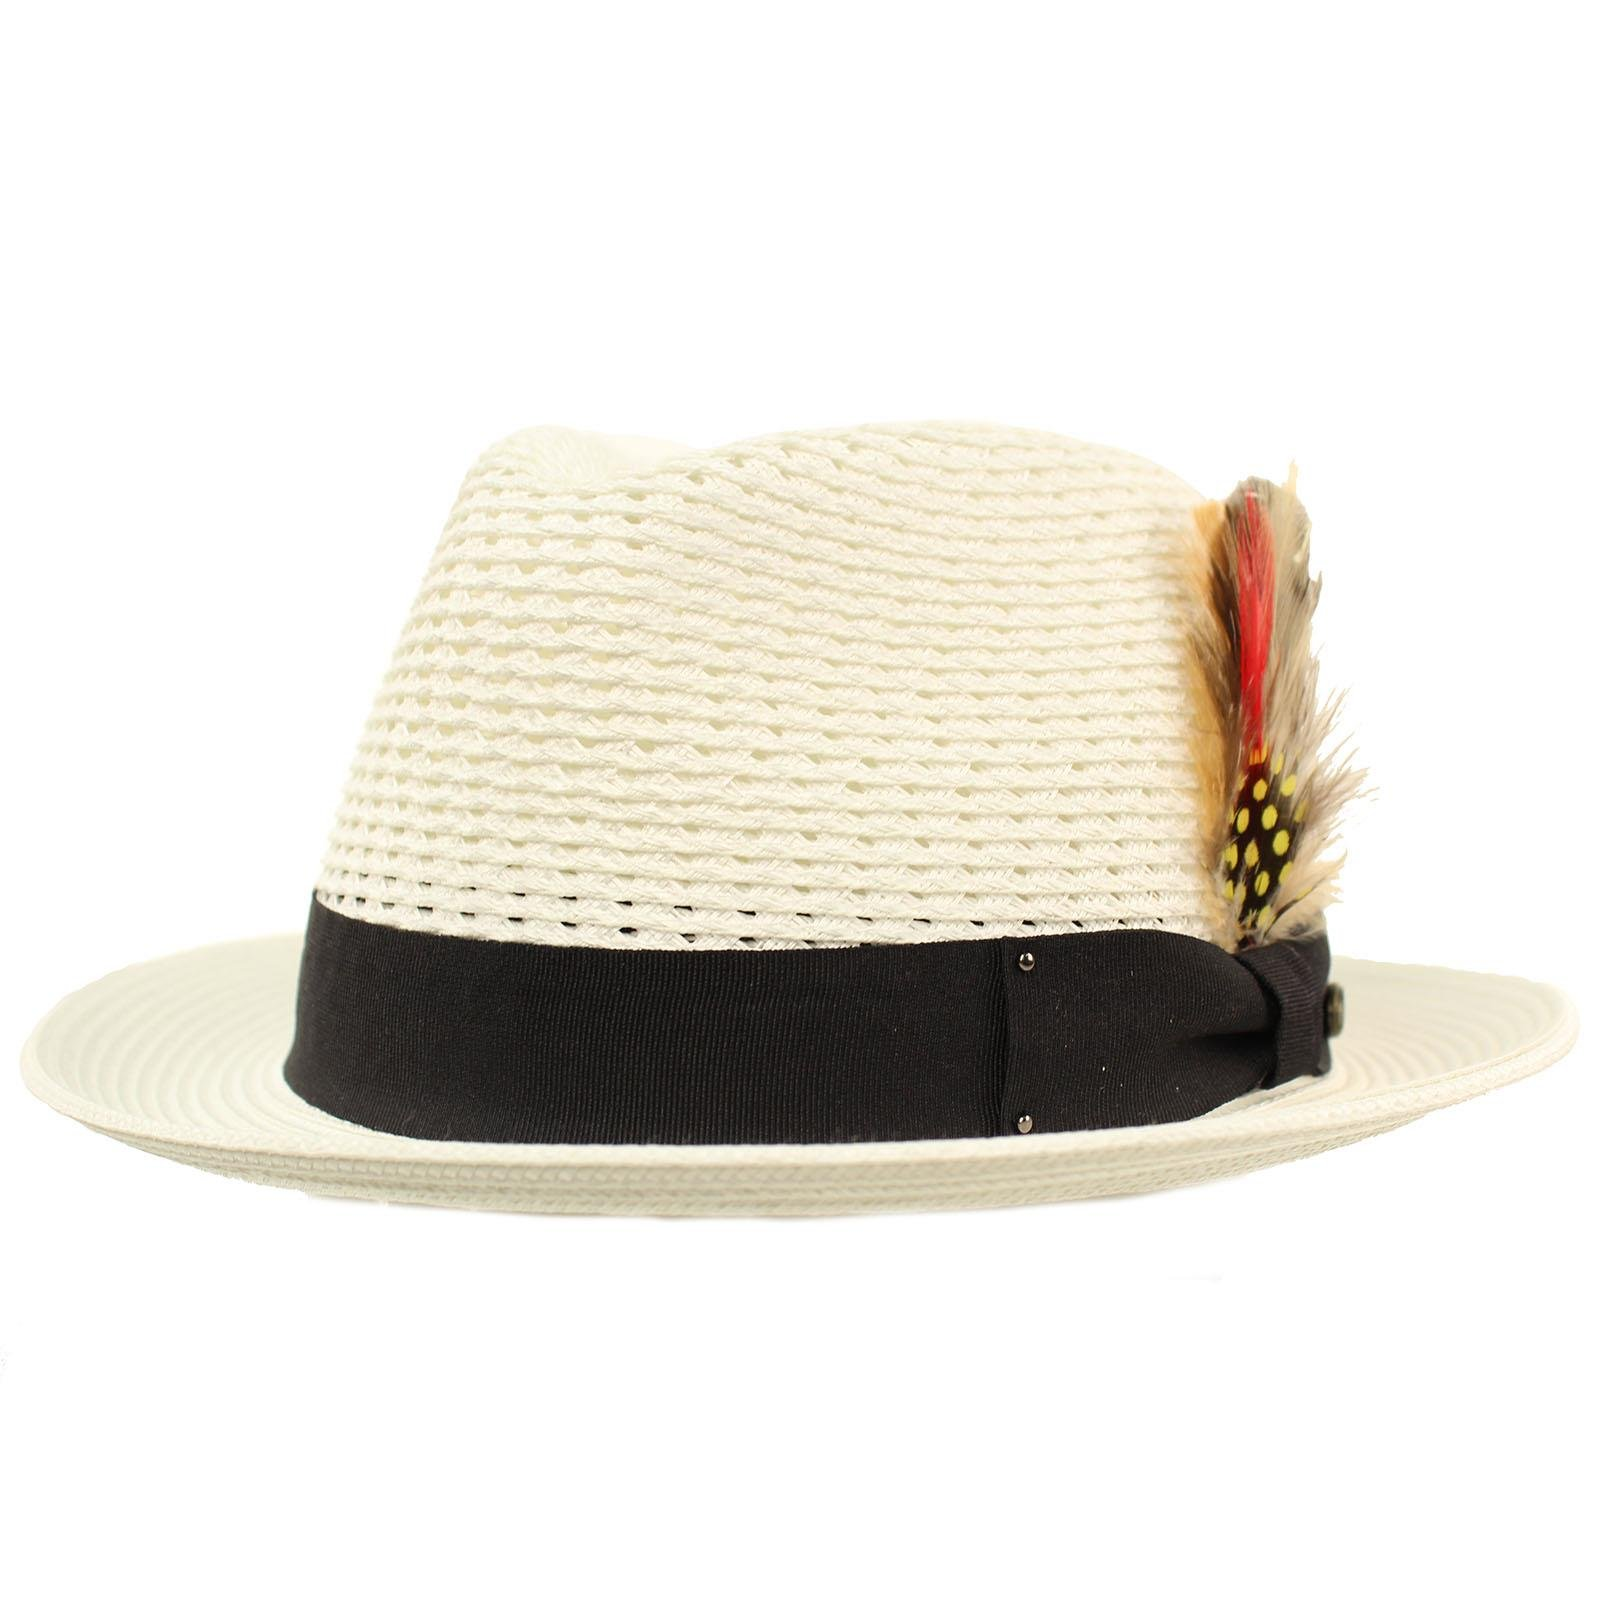 Men's Light Vented Removable Feather Derby Fedora Curled Brim Hat L/XL White